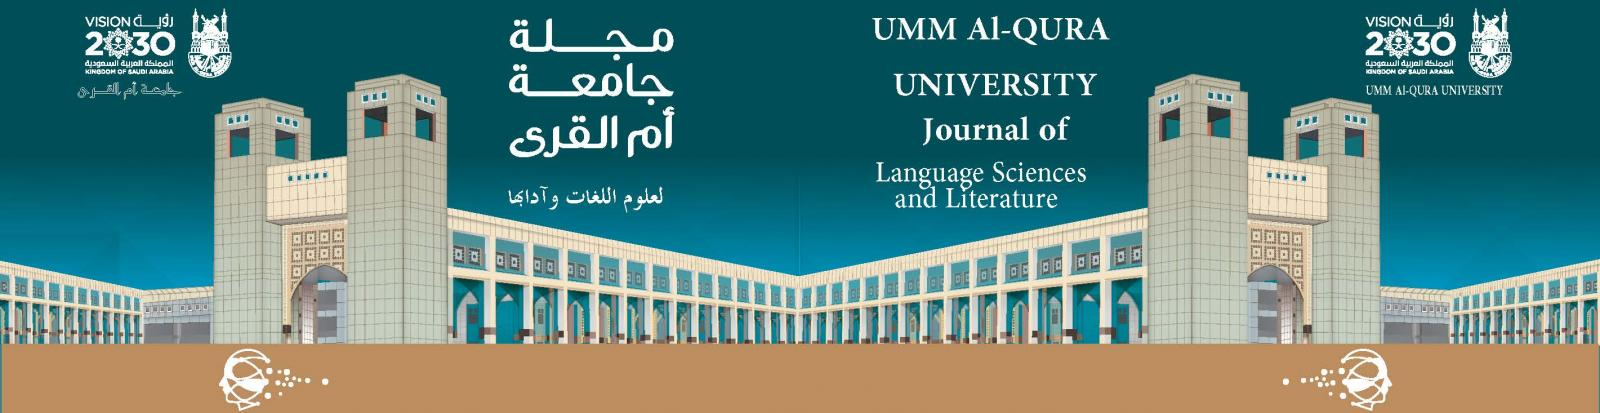 Journal of Language Sciences and Literature